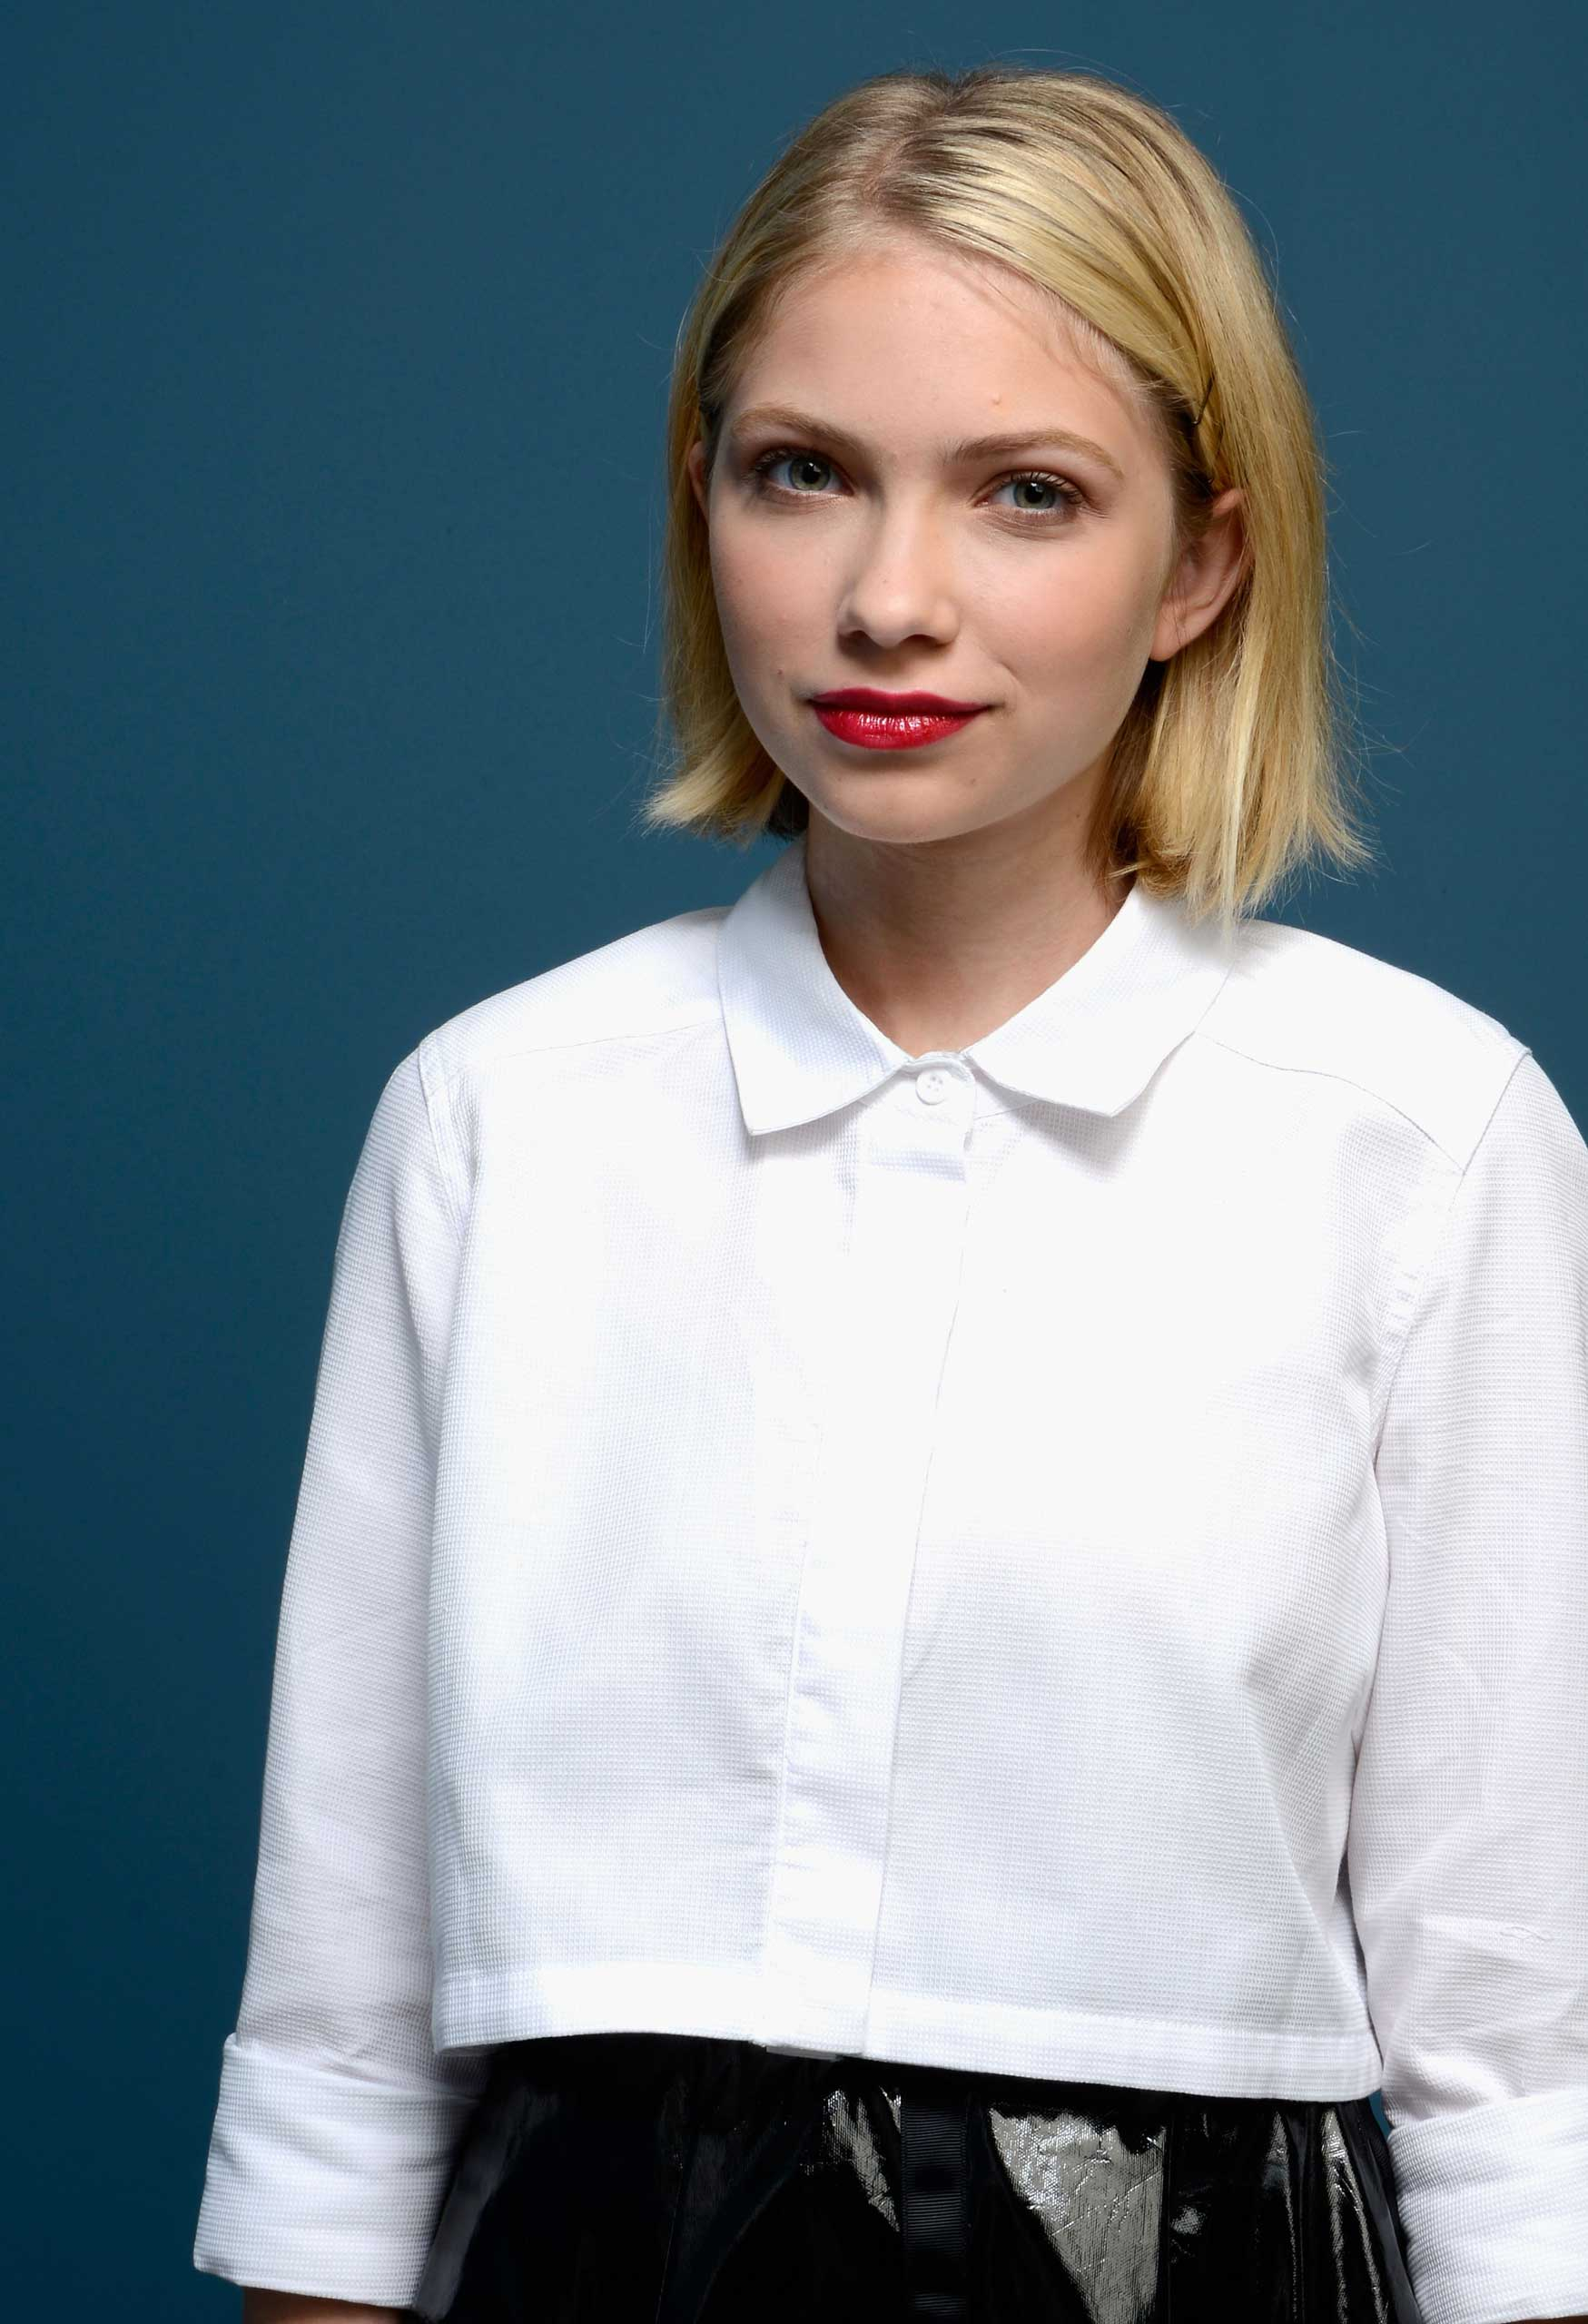 Actress Tavi Gevinson of 'Enough Said' poses at the Guess Portrait Studio during 2013 Toronto International Film Festival on September 7, 2013 in Toronto, Canada. (Photo by Larry Busacca/Getty Images)